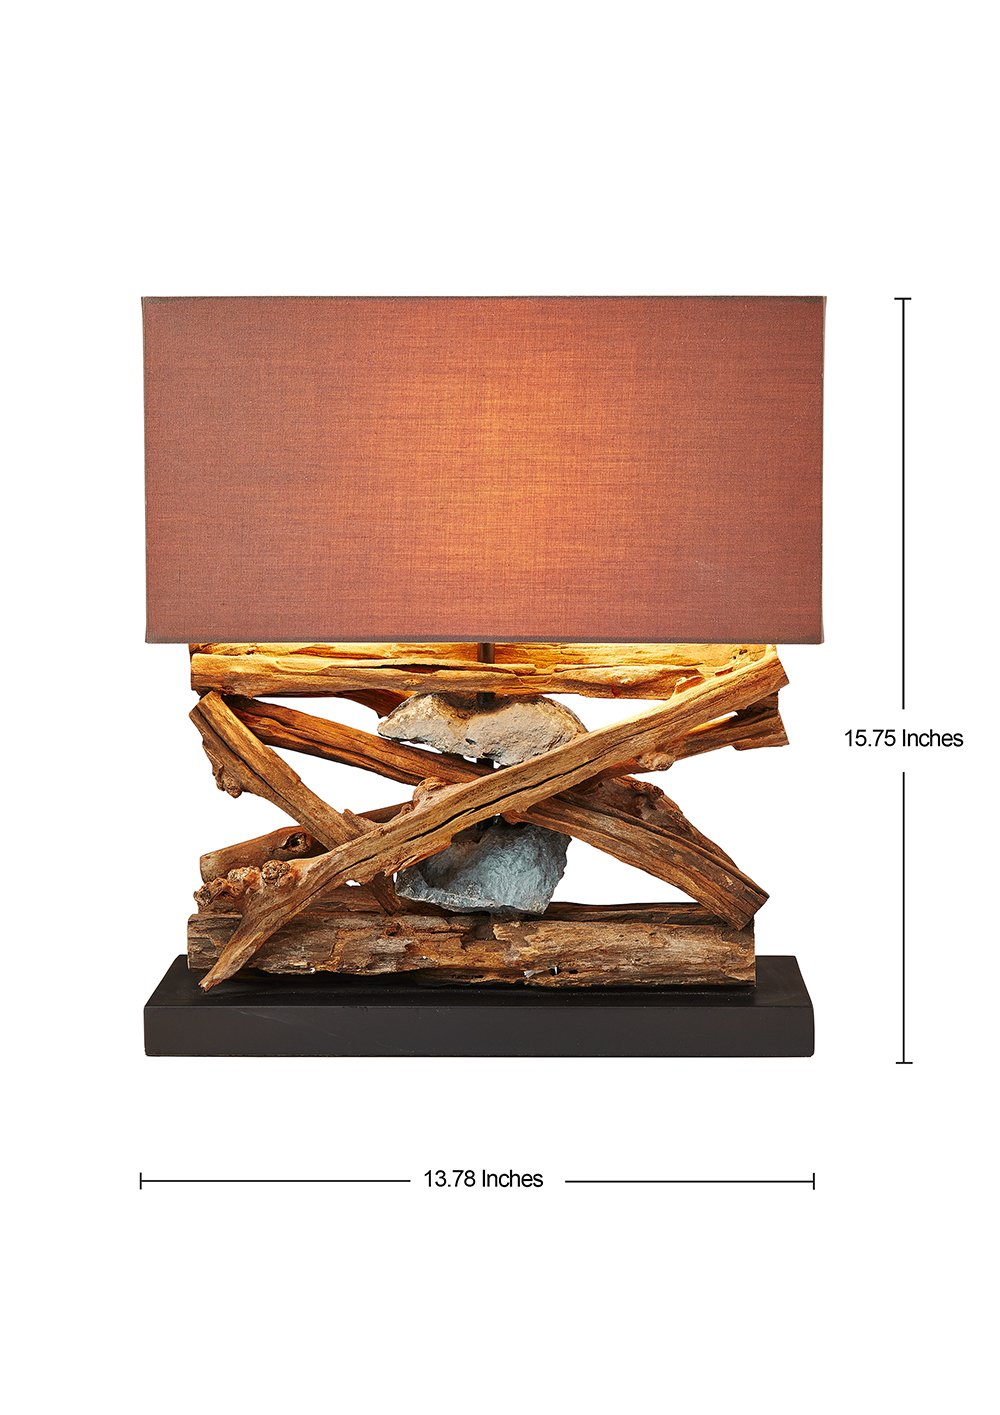 O'THENTIQUE Rustic Wood & Stone Table Lamp - Natural Reclaimed Driftwood Coastal Nautical Tropical Design - Perfect for Beach House Cabin Cottage Bedroom Living Room Office Entryway